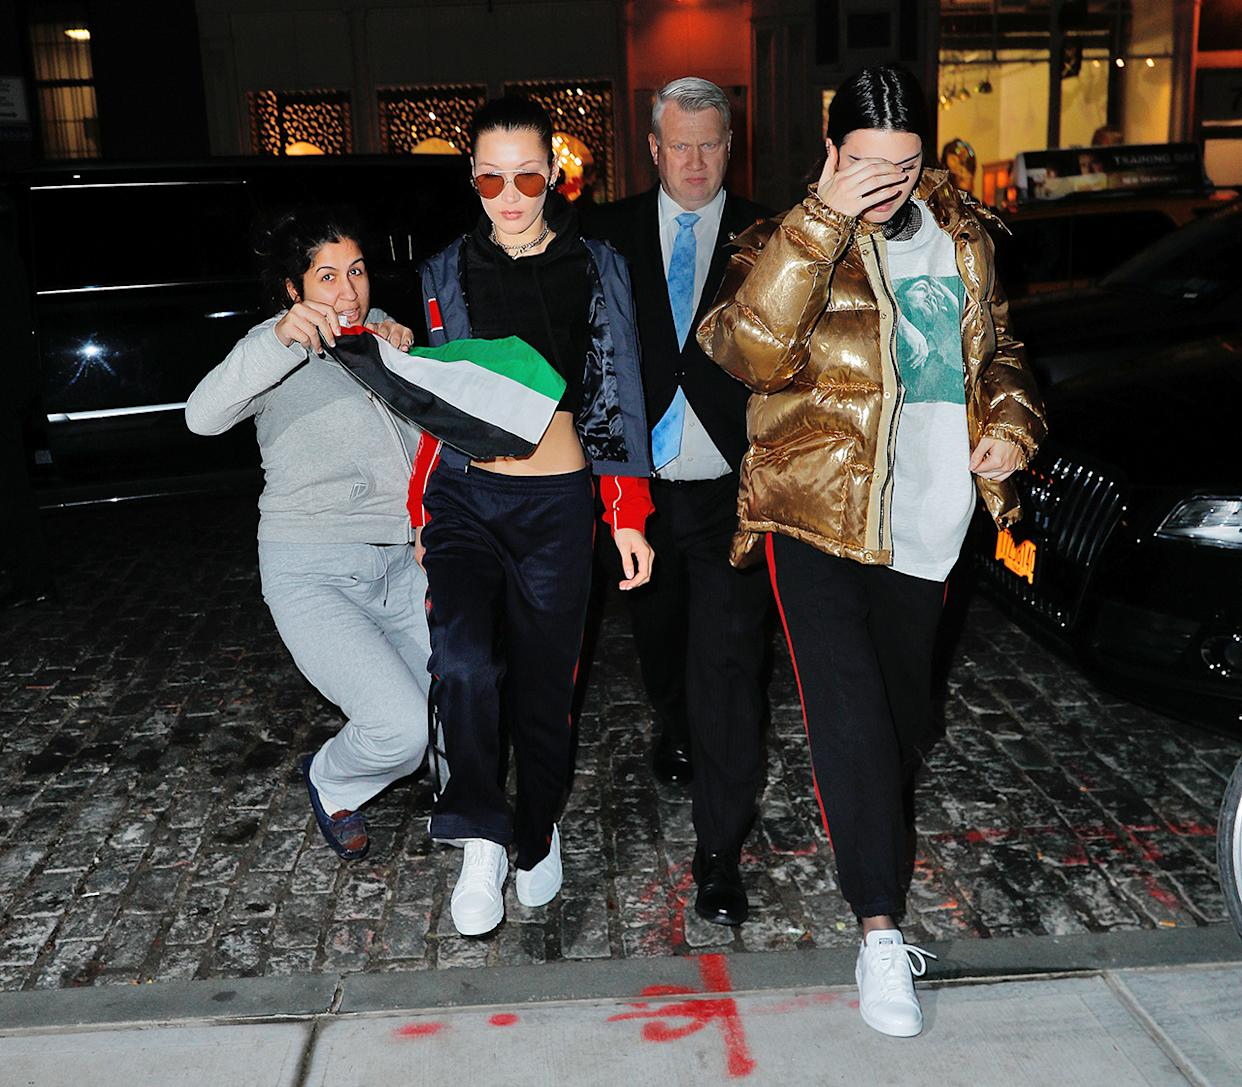 Scary moment as a crazed fan drapes the Palestinian flag across Bella Hadid and Kendall Jenner upon arrival at Gigi's apartment in New York.� The fan was arrested by police moments later<P>Pictured: Bella Hadid, Kendall Jenner<B>Ref: SPL1424695  180117  </B><BR/>Picture by: Jackson Lee / Splash News<BR/></P><P><B>Splash News and Pictures</B><BR/>Los Angeles:310-821-2666<BR/>New York:212-619-2666<BR/>London:870-934-2666<BR/>photodesk@splashnews.com<BR/></P>